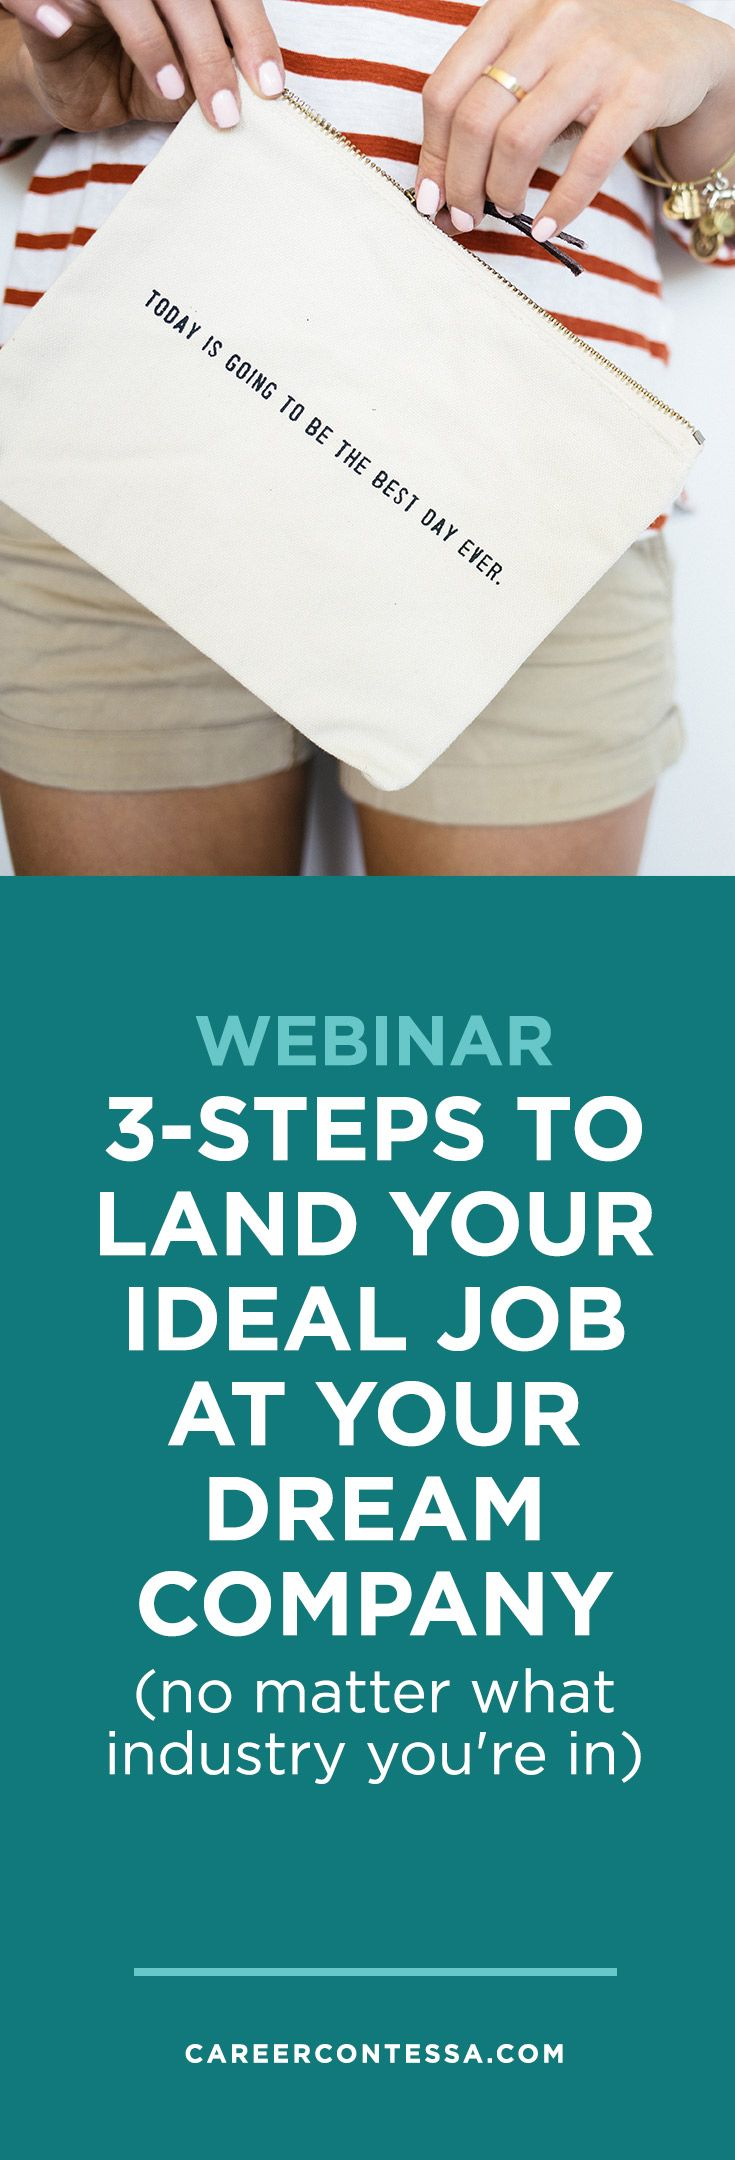 For most people, the idea of finding a new job or switching careers is about as enjoyable as putting together Ikea furniture. Stop torturing yourself and feeling hopeless. We have a webinar that will teach you the best job search strategy you haven't tried ALREADY. | CareerContessa.com